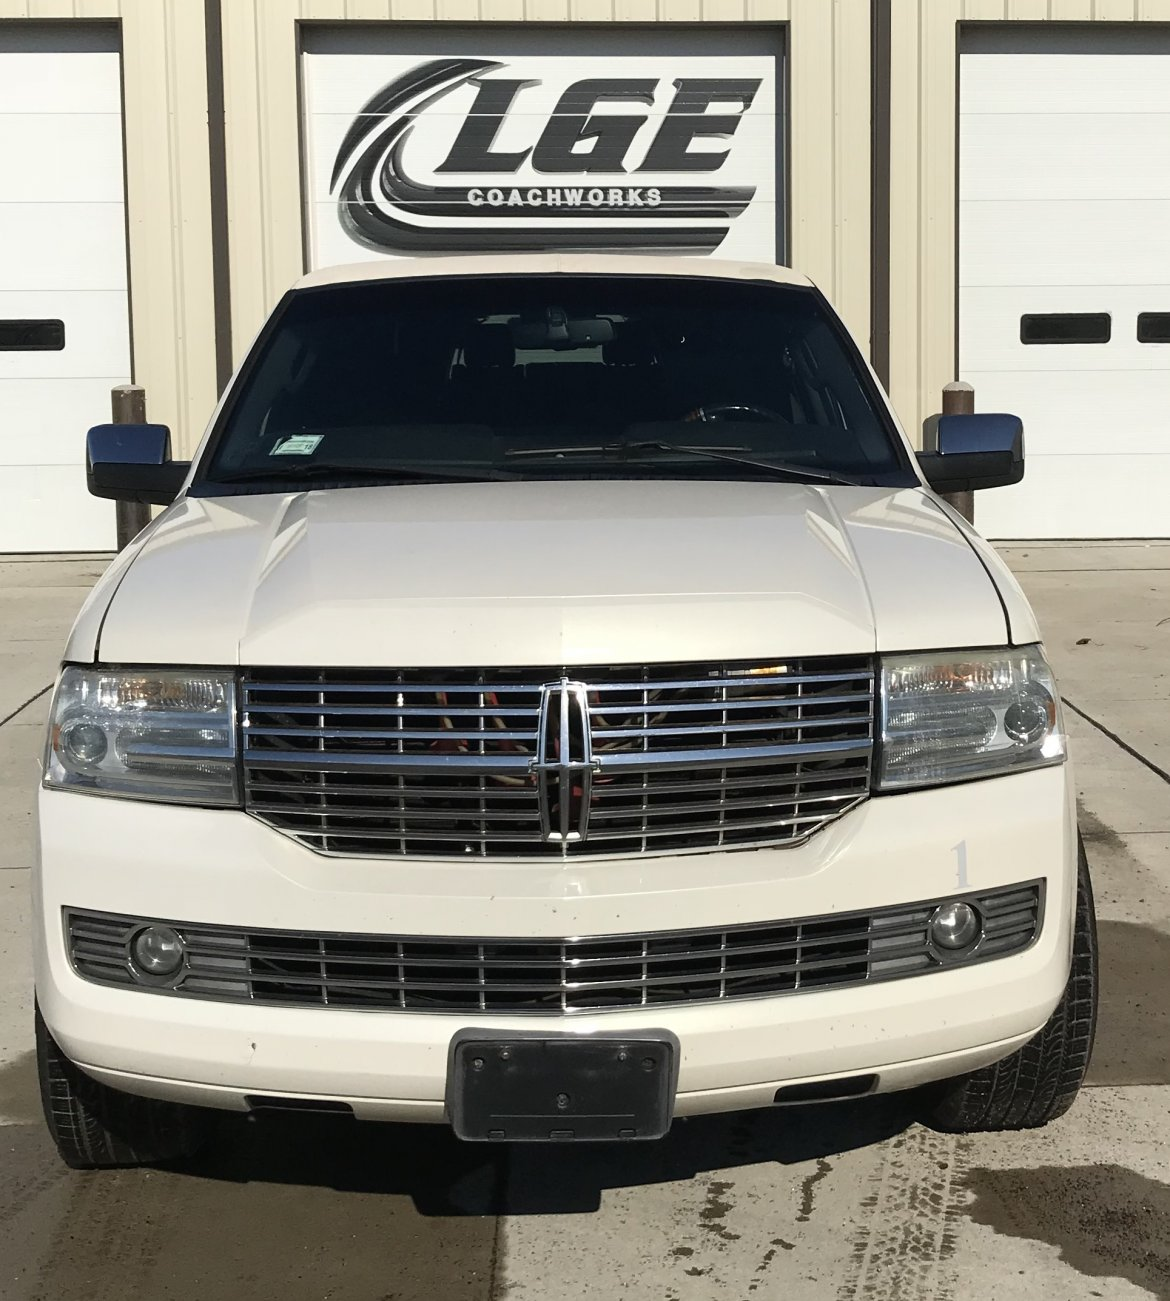 Lincoln Limo For Sale: Used 2008 Lincoln Navigator For Sale #WS-10684